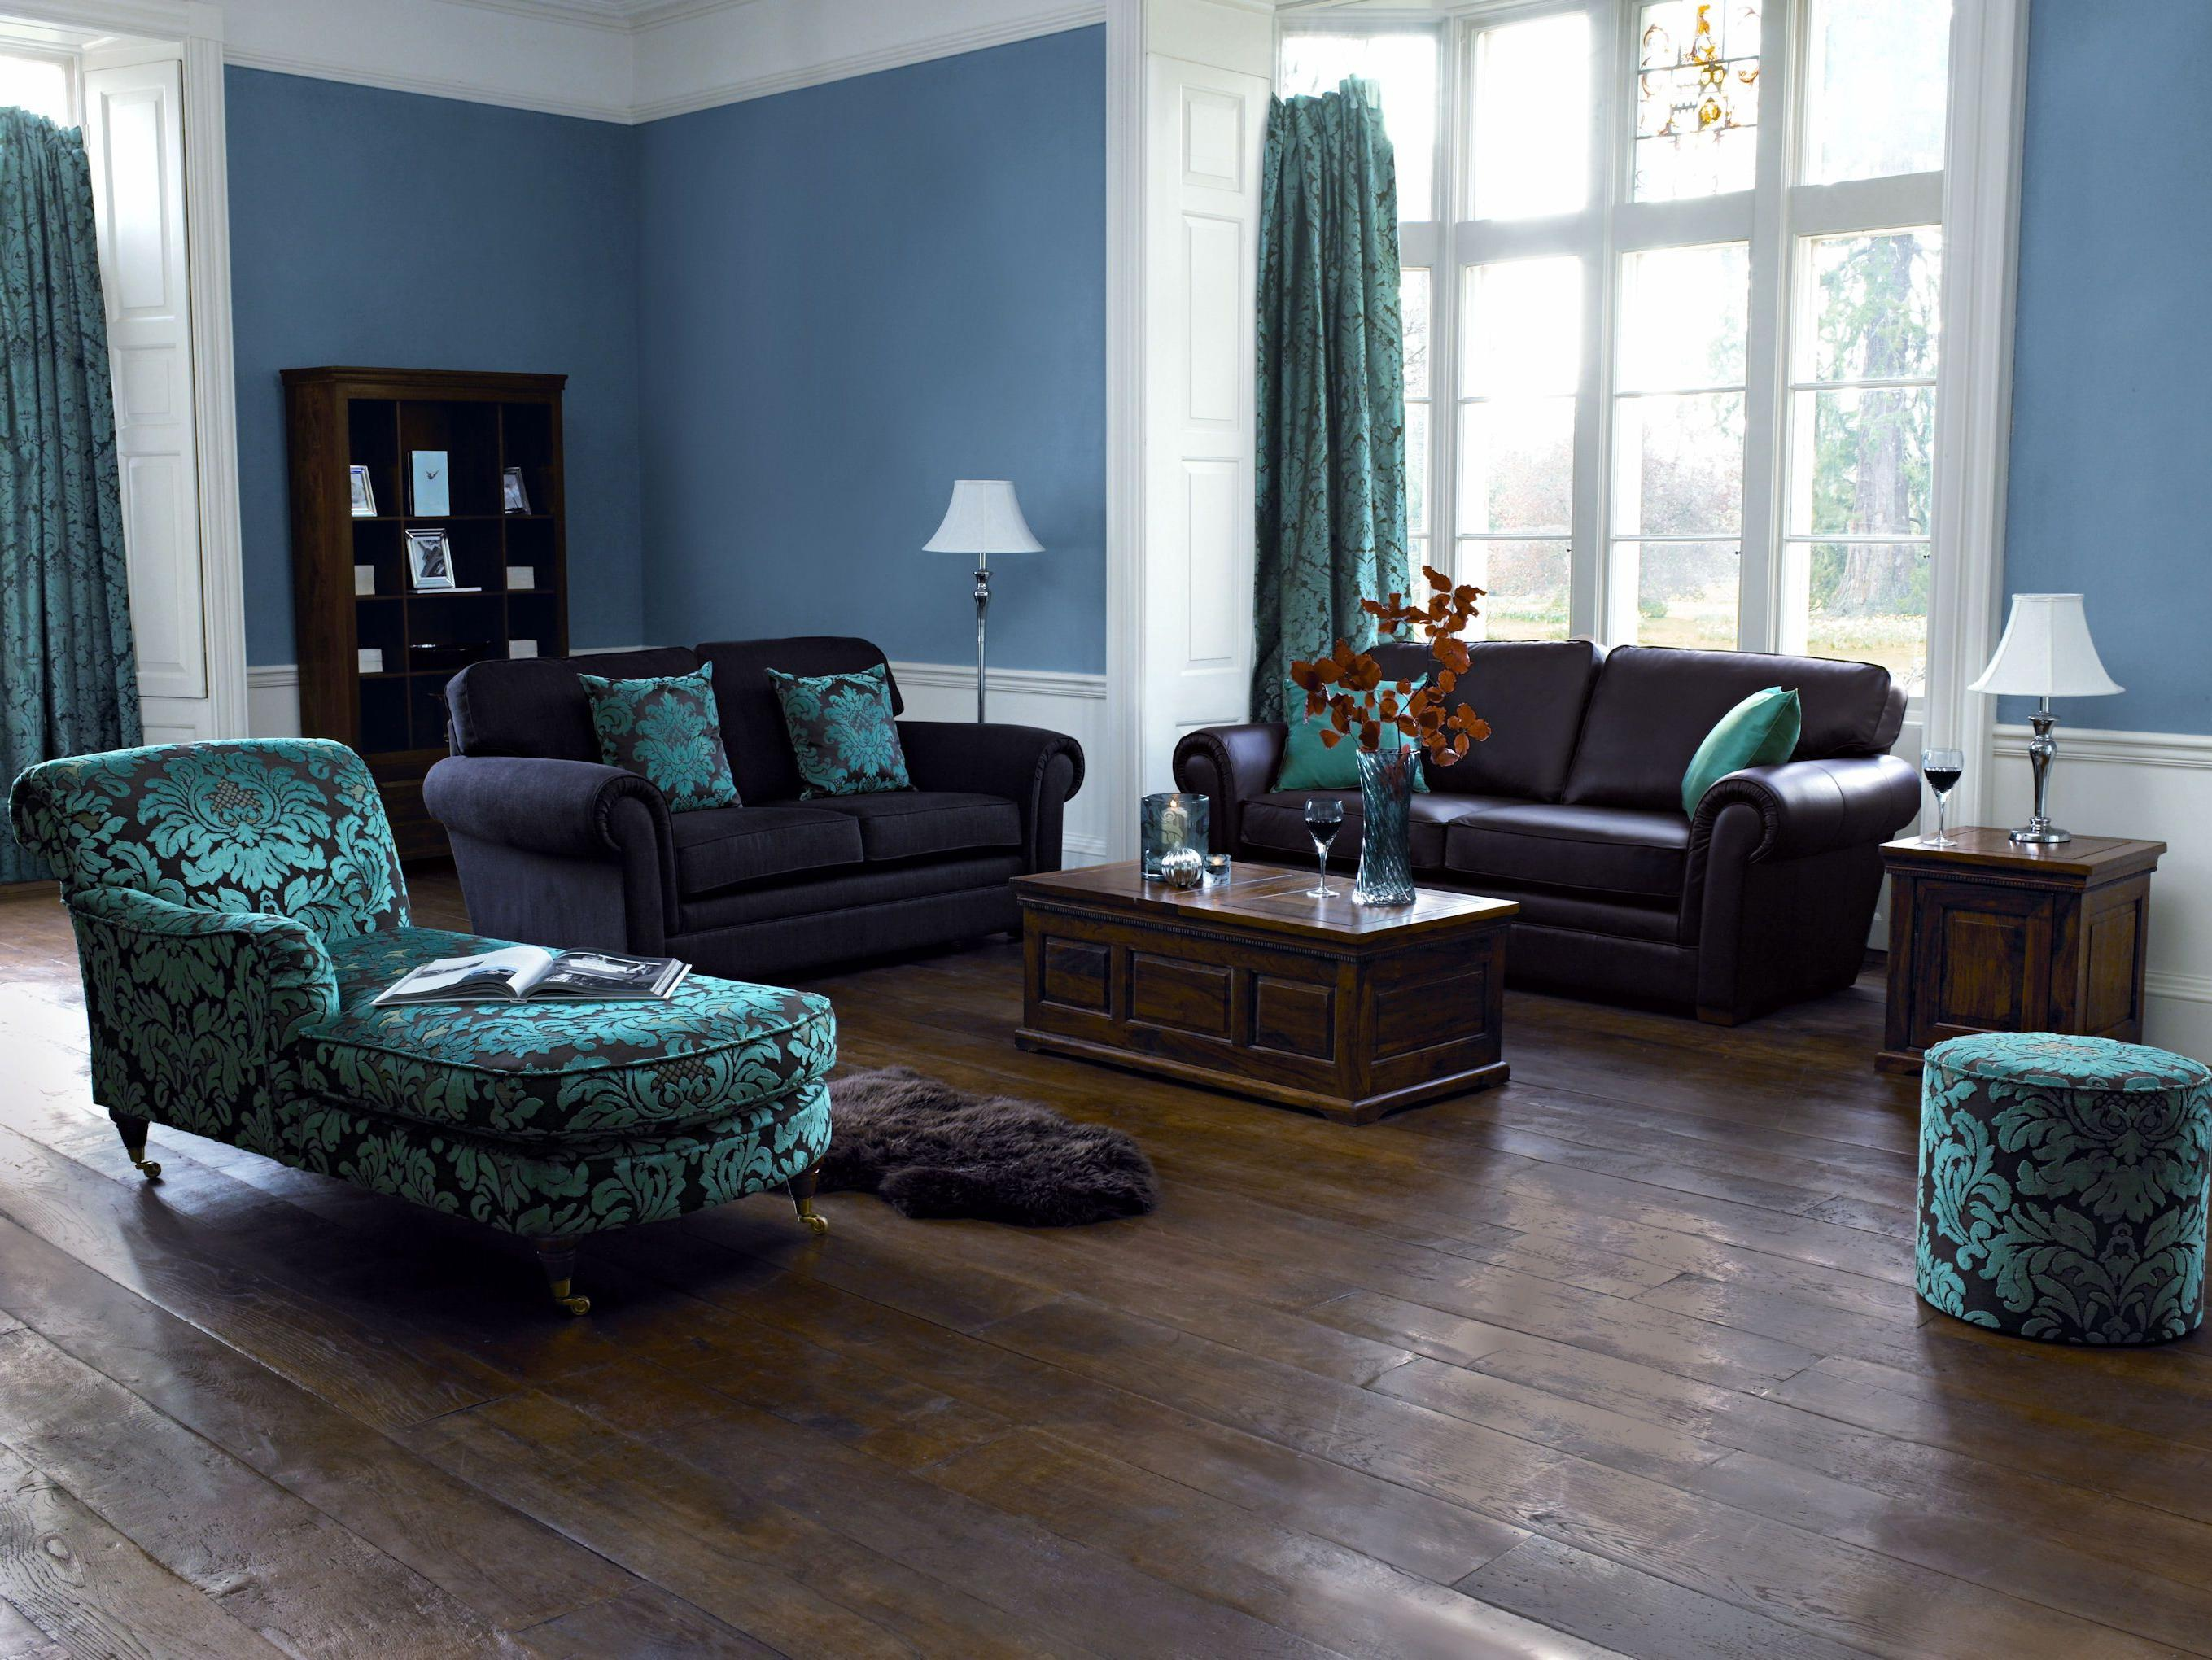 bedroom color dark furniture Blue paint color ideas for living room with dark furniture and  2040 X 2718